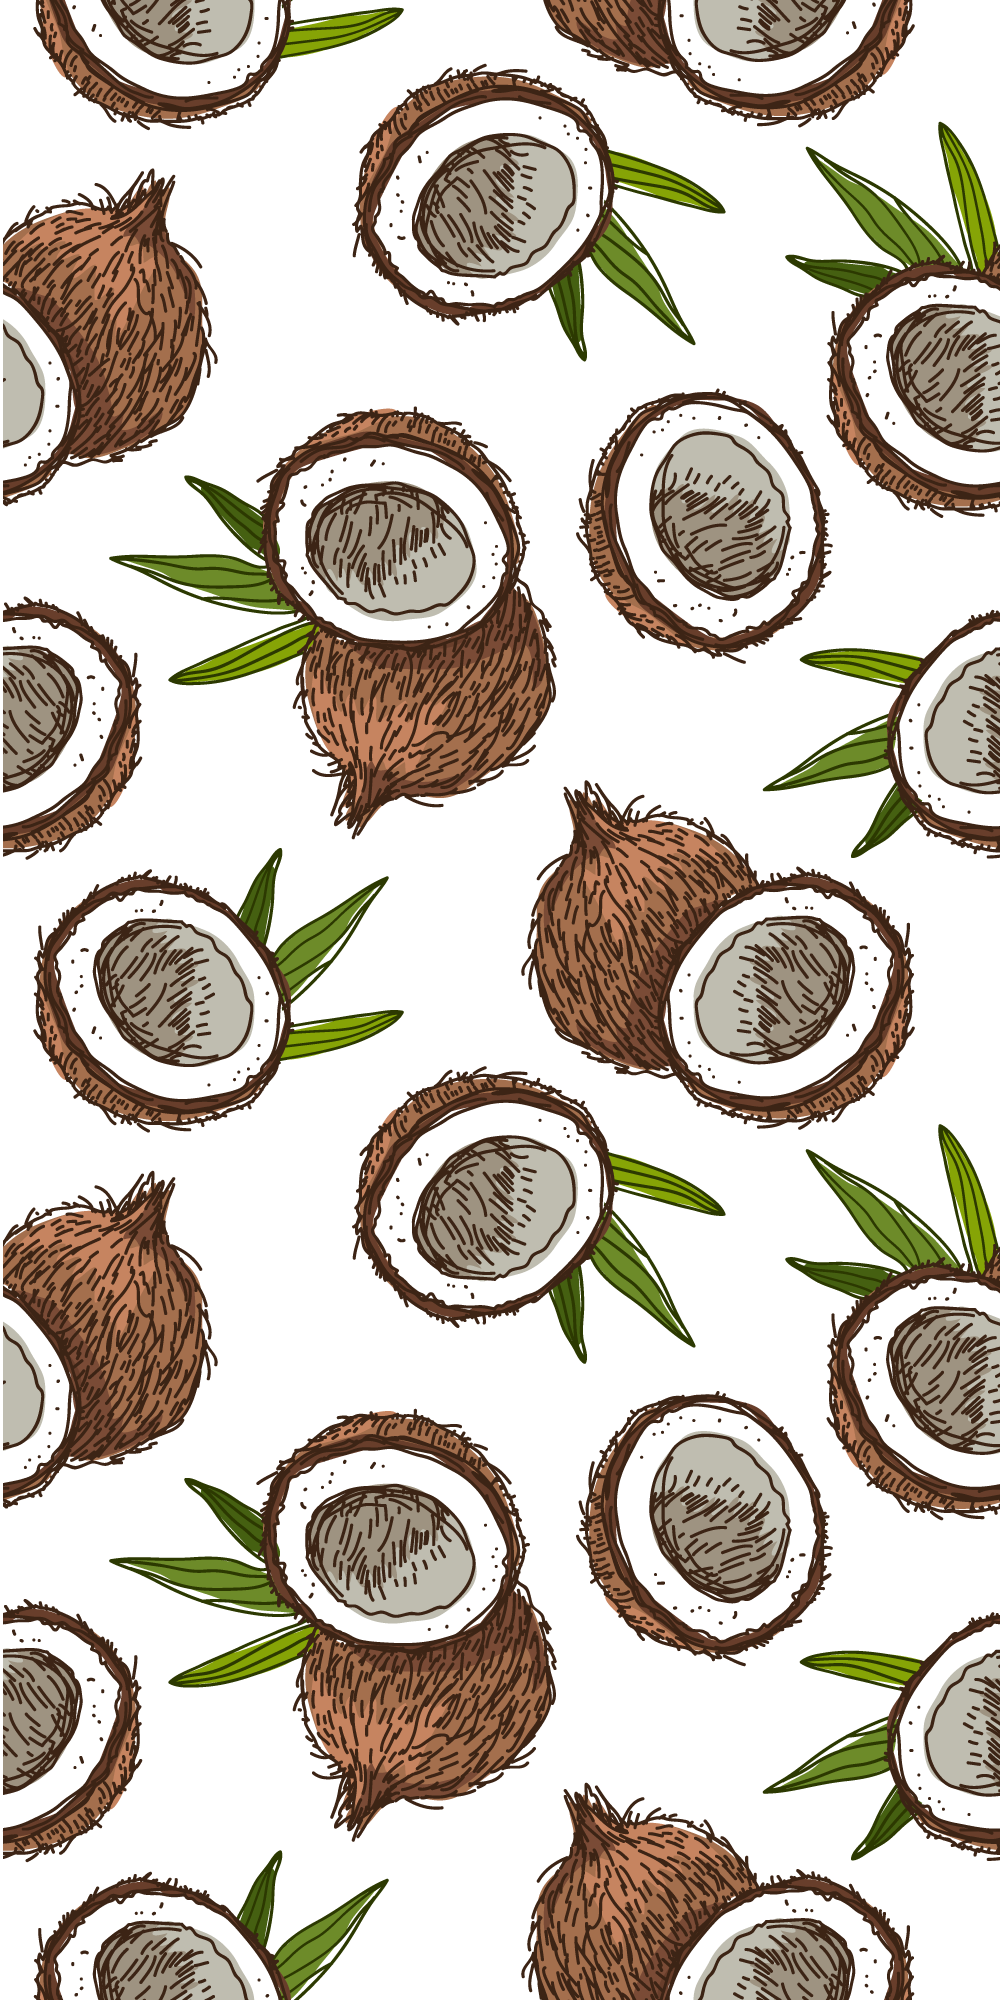 #Coconuts for if you're feeling #tropical. #Casetify #iPhone #Art #Design #Fruit #Illustration